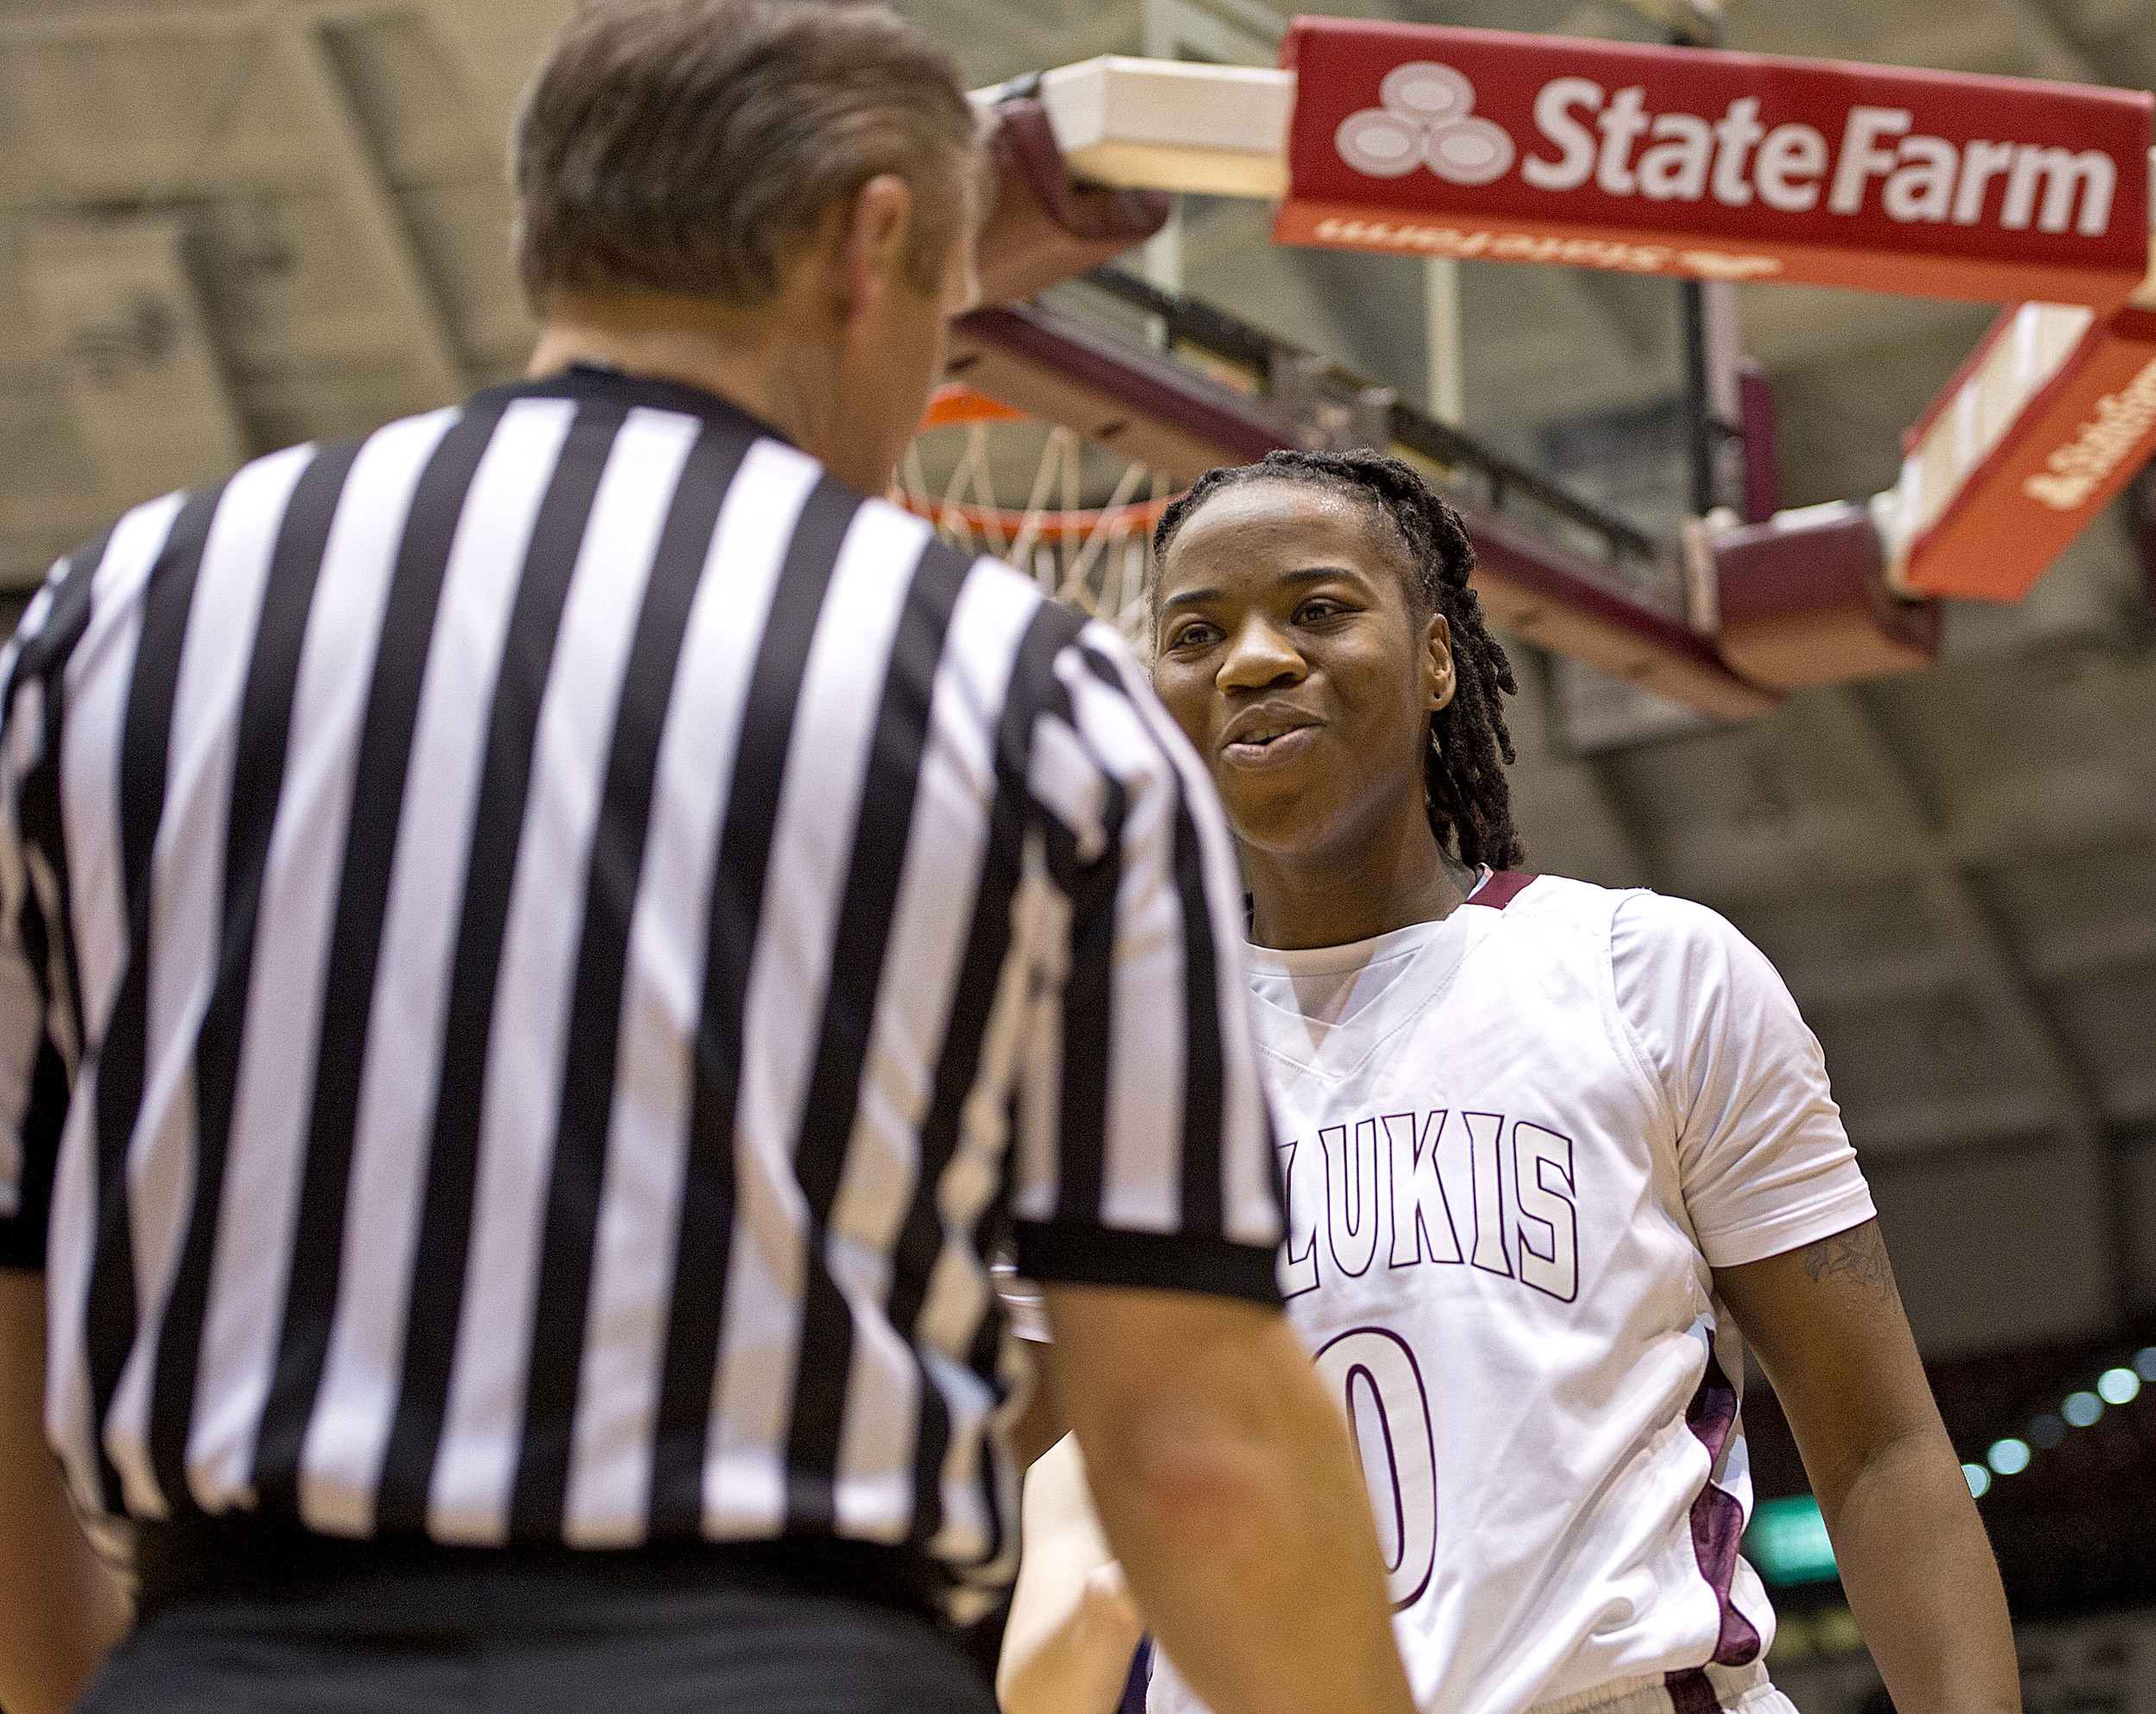 Salukis forward Dyana Pierre disputes a call with the official.